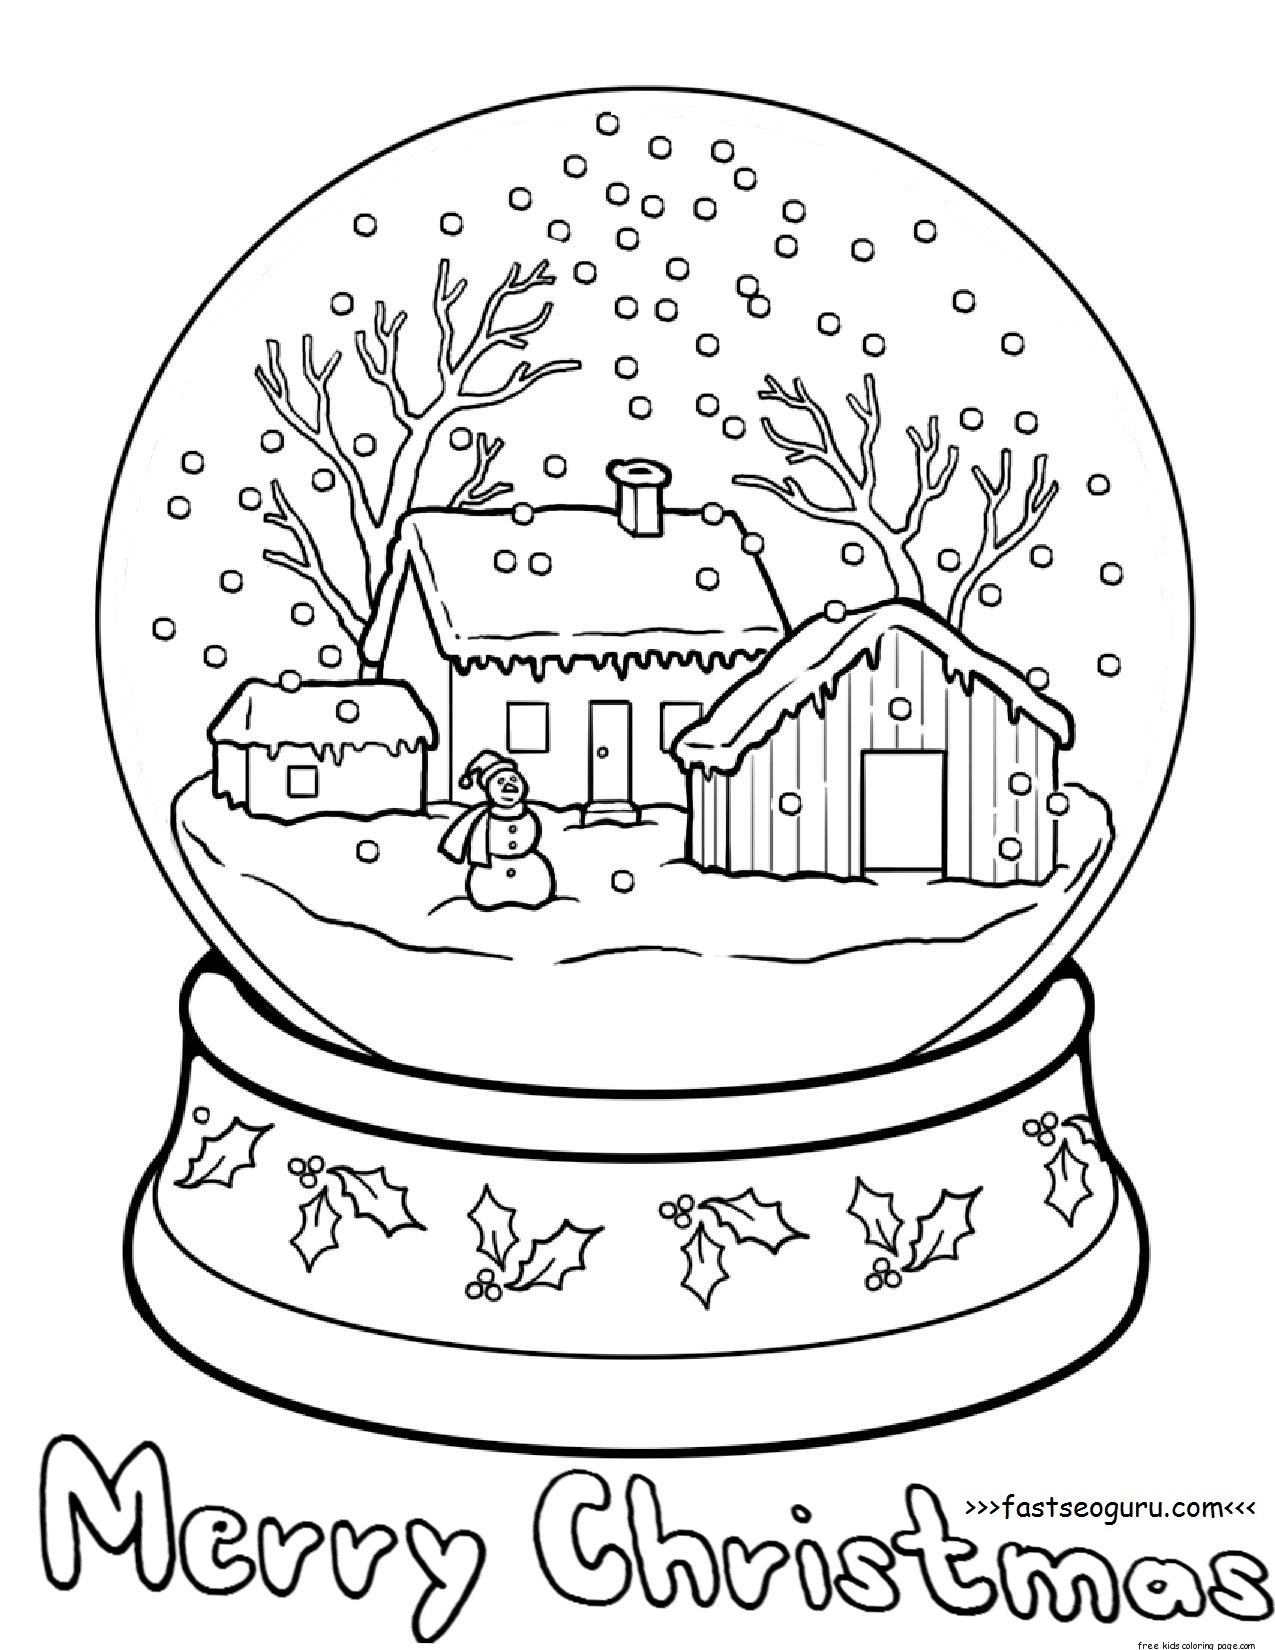 Printble Christmas Snow Globe Coloring Pages For KidsFree Printable Coloring Pages For Kids